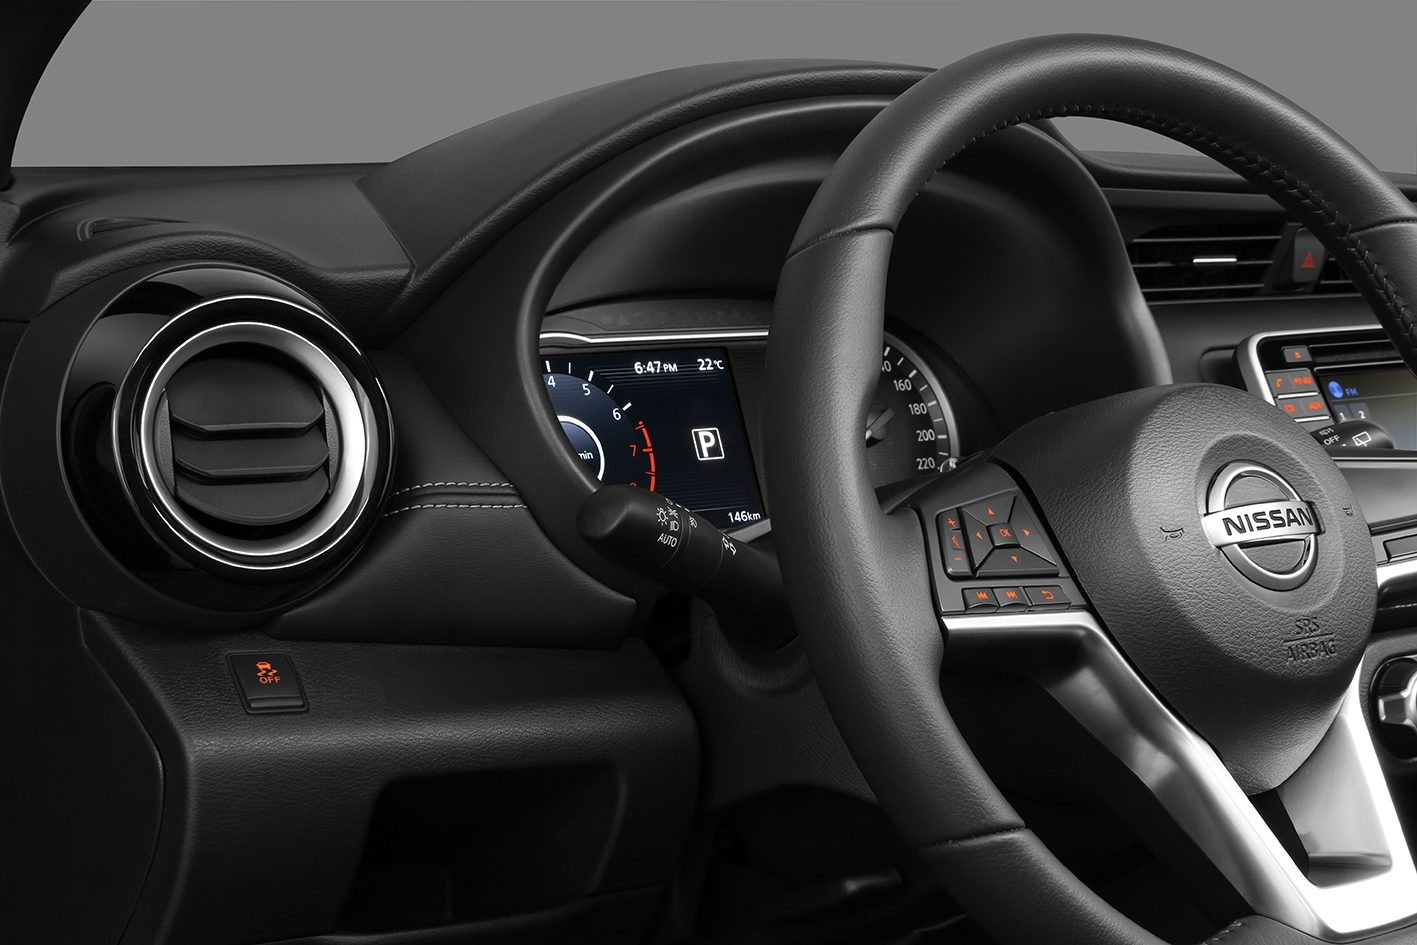 Nissan Kicks air conditioning vent and gauge-cluster detail